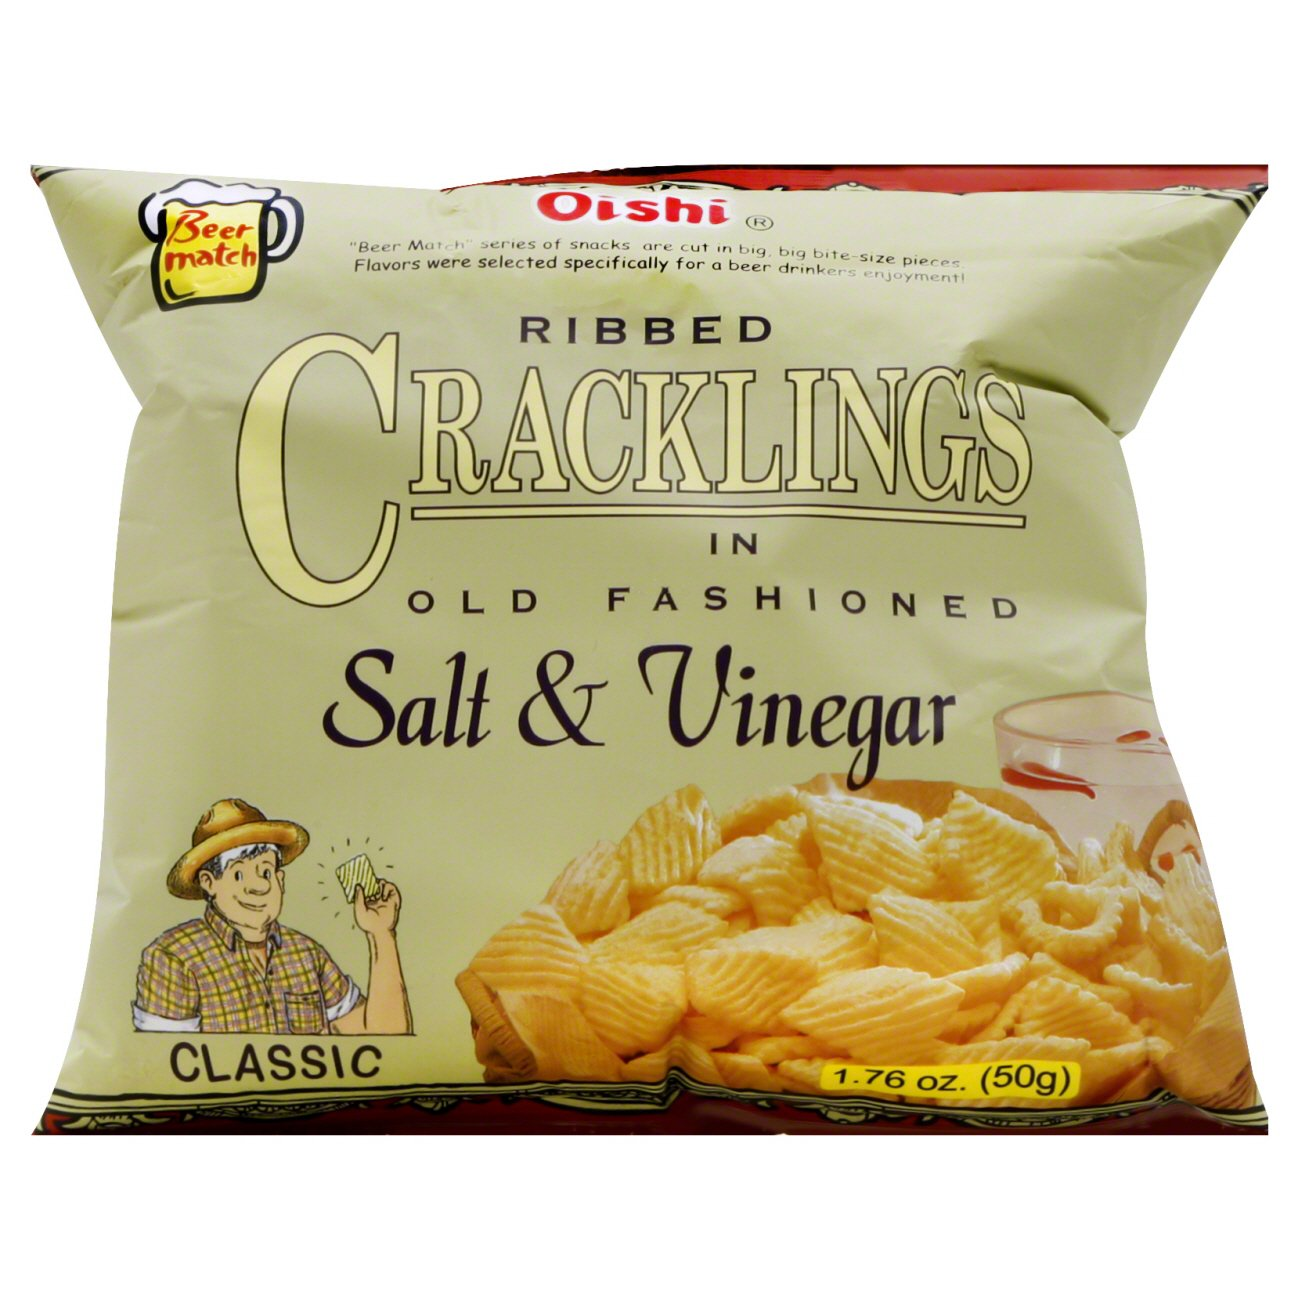 Oishi Classic Ribbed Cracklings In Old Fashioned Salt And Vinegar Shop Chips At H E B,How To Defrost A Turkey Breast